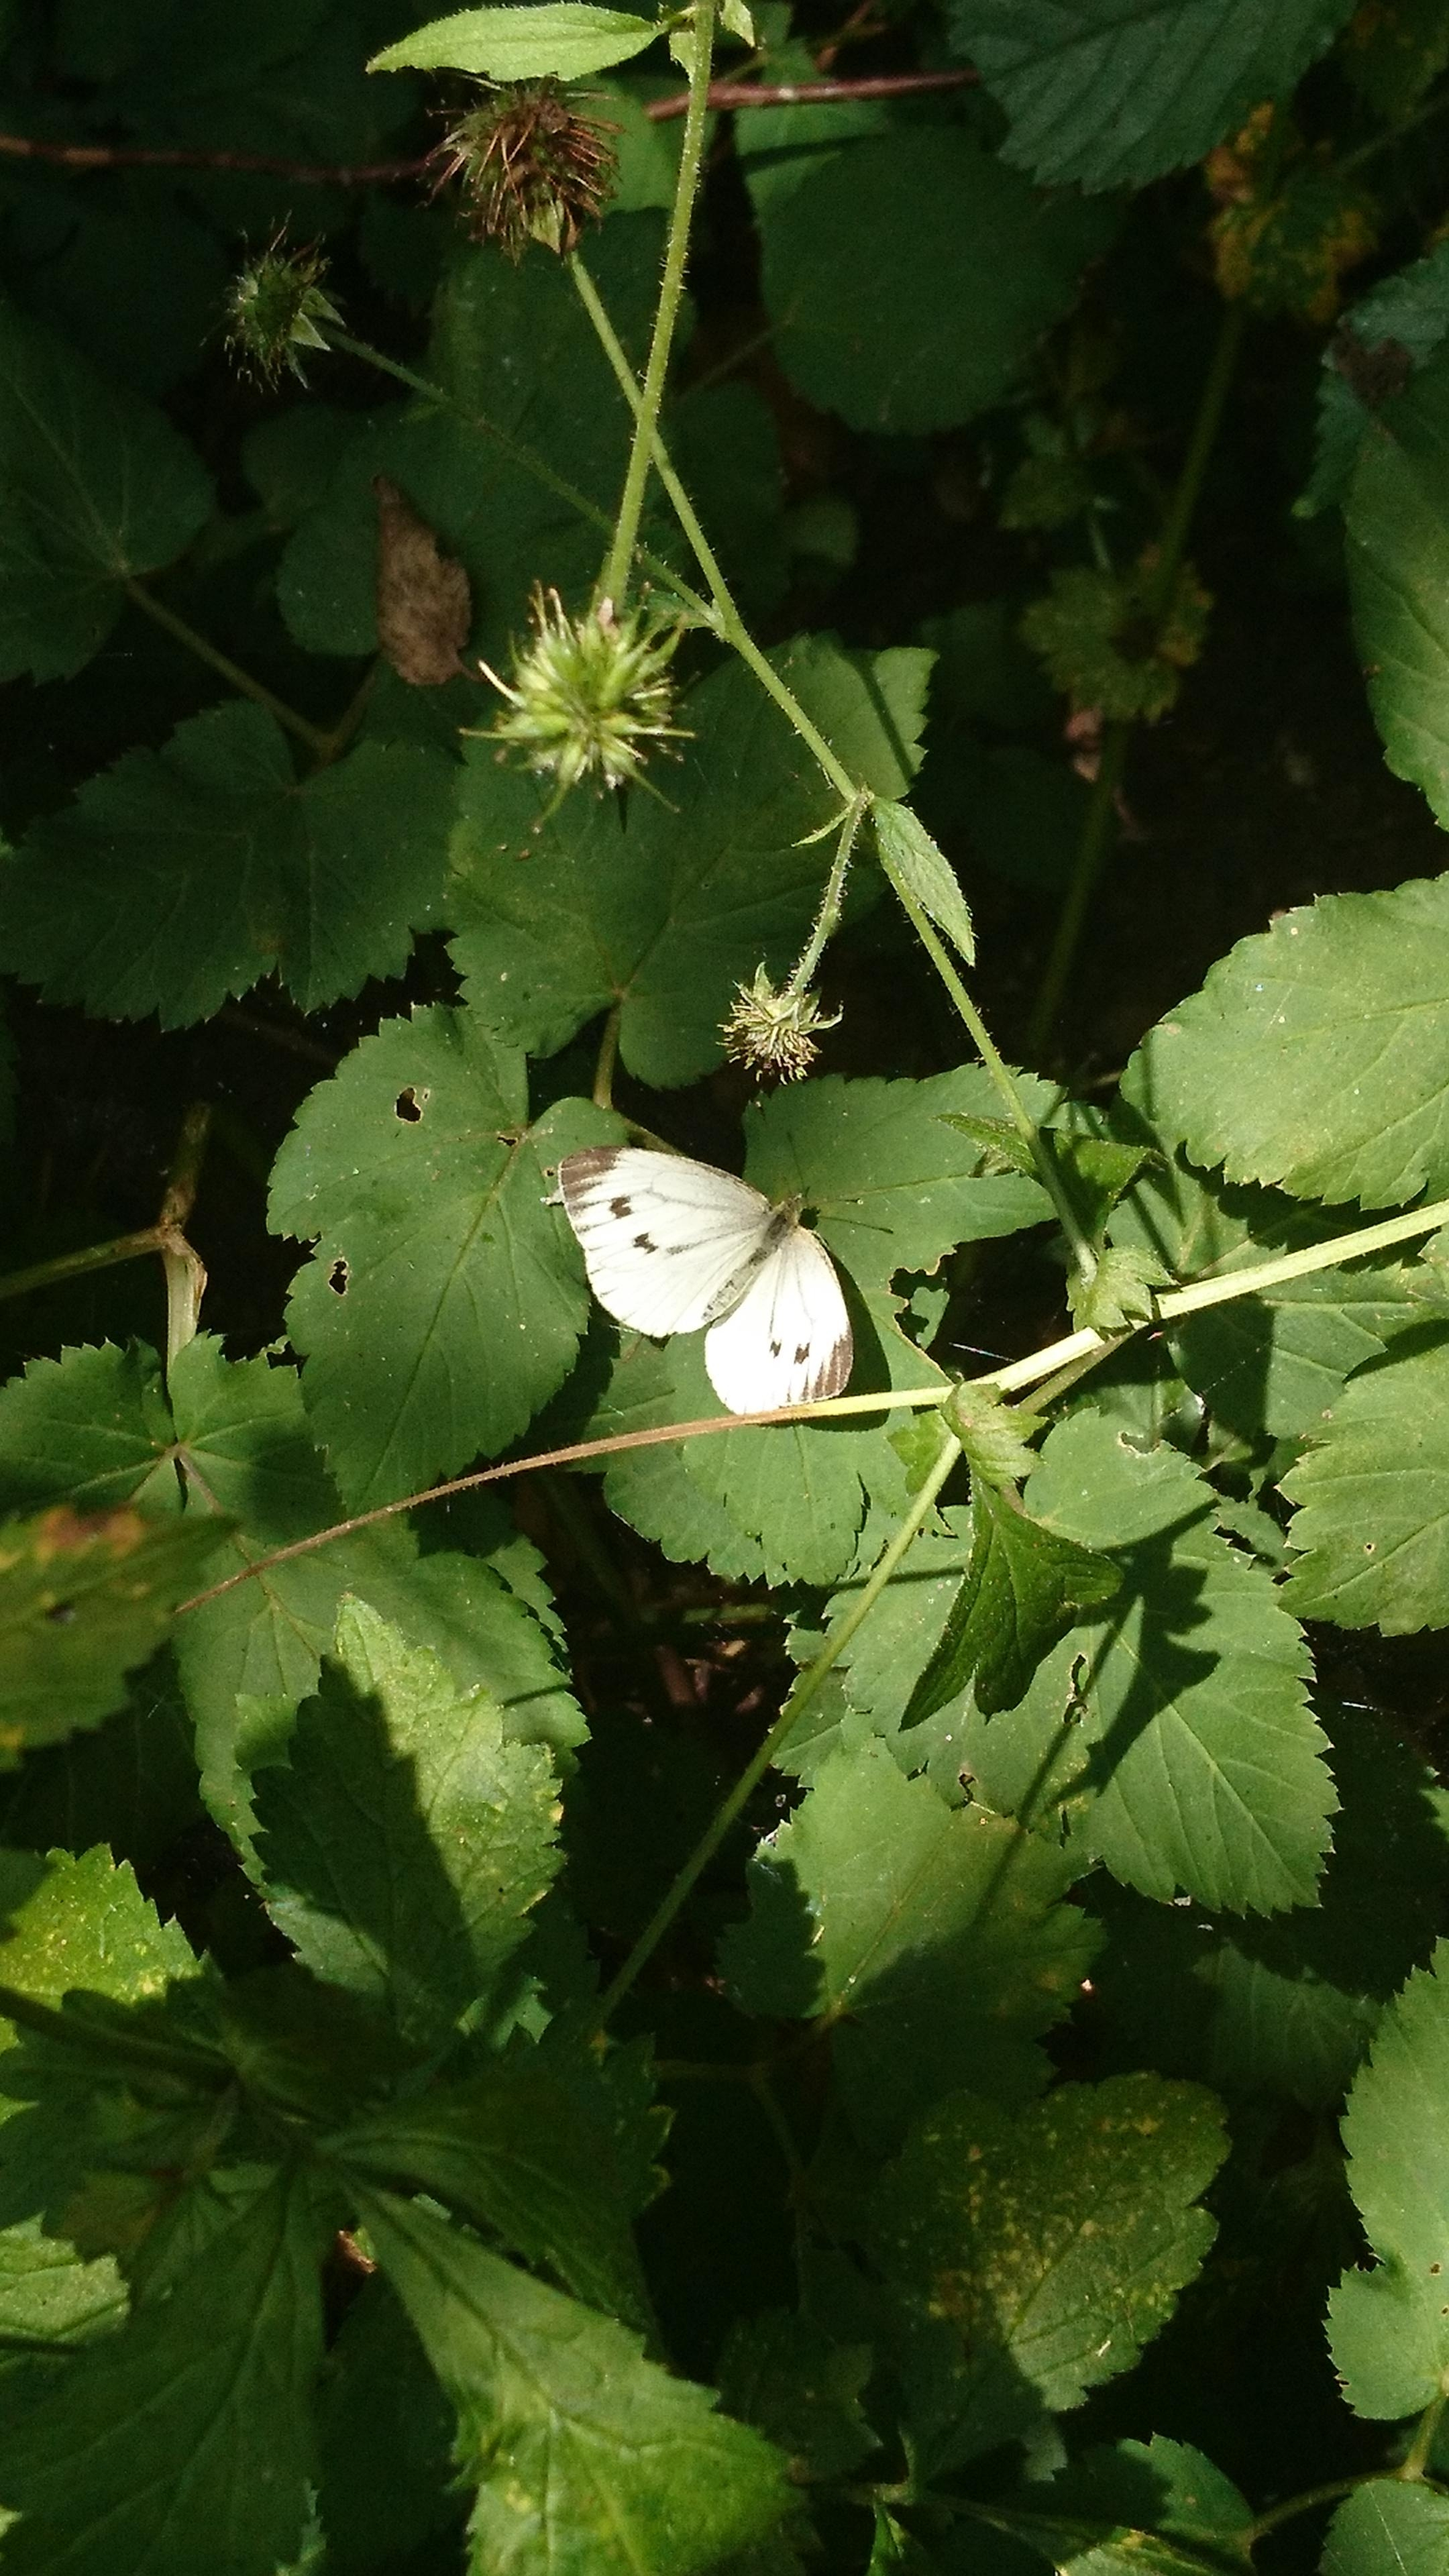 Oh little white butterfly dont be so shy schmetterling apollofalter natur  e7791bbe 770d 4abc b353 fc70d7e5ef78